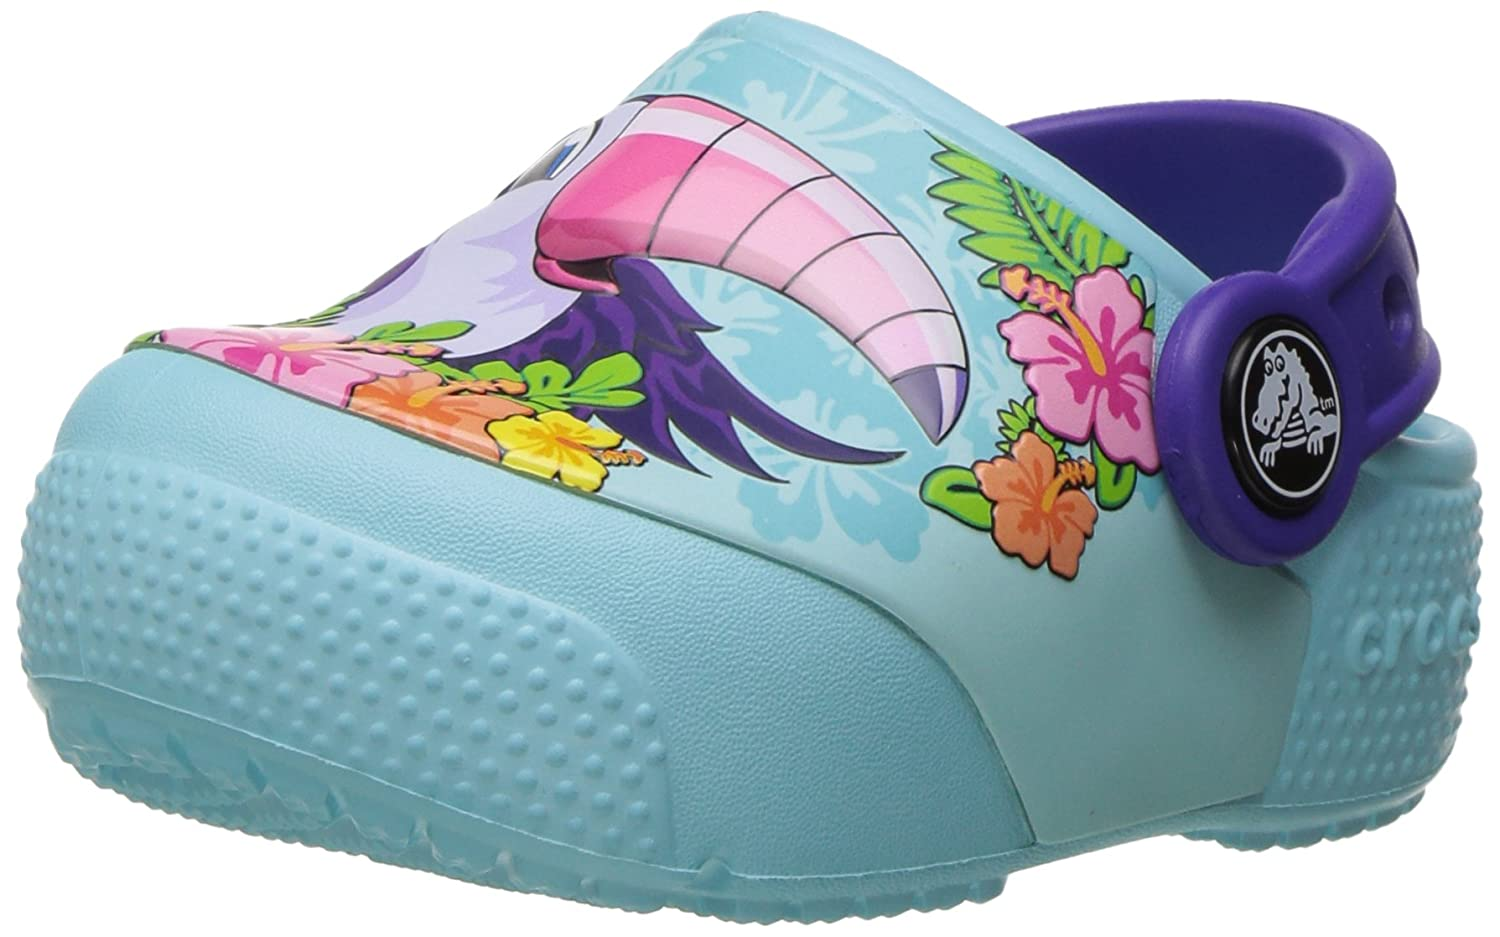 Crocs Kids' Fun Lab Light-up Girls Graphic Clog